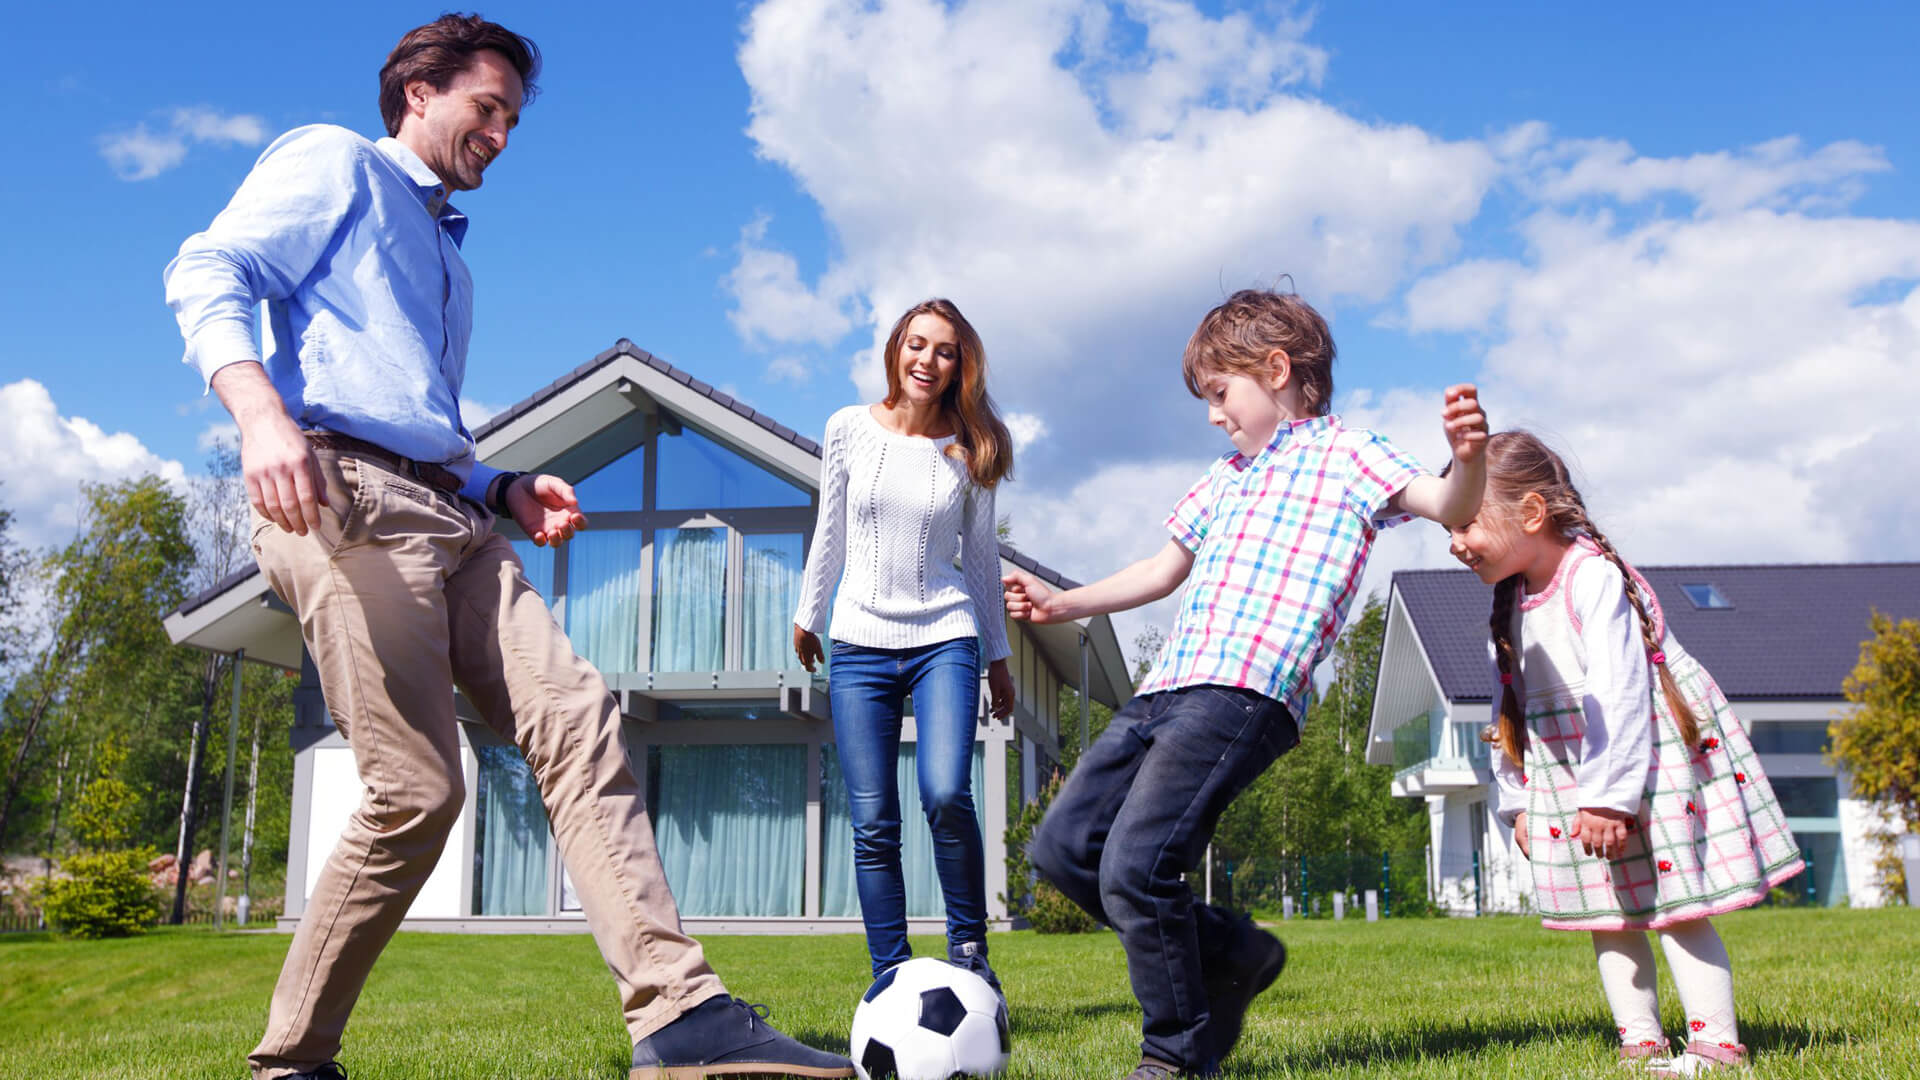 family kicking soccer ball on lawn